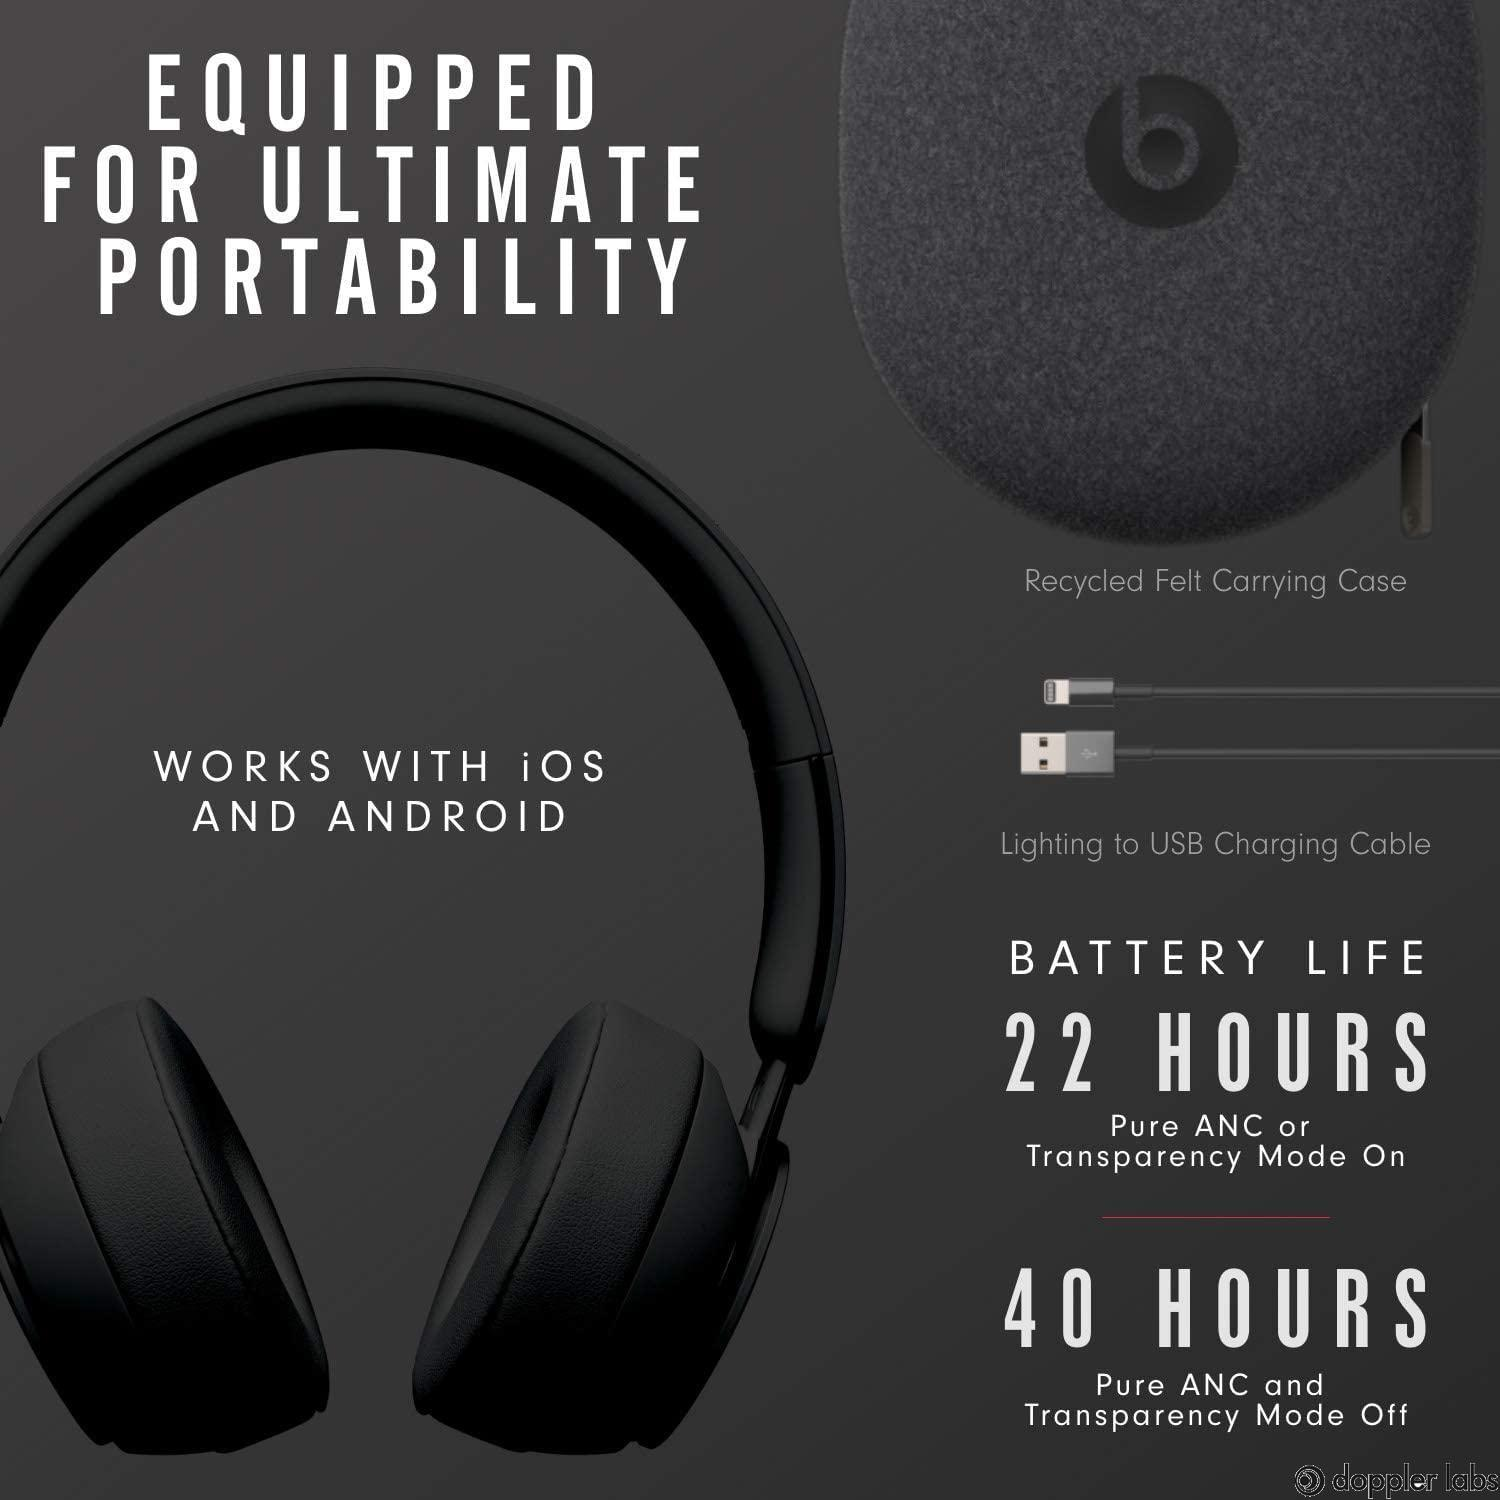 Beats Solo Pro has a maximum battery life of 40 hours